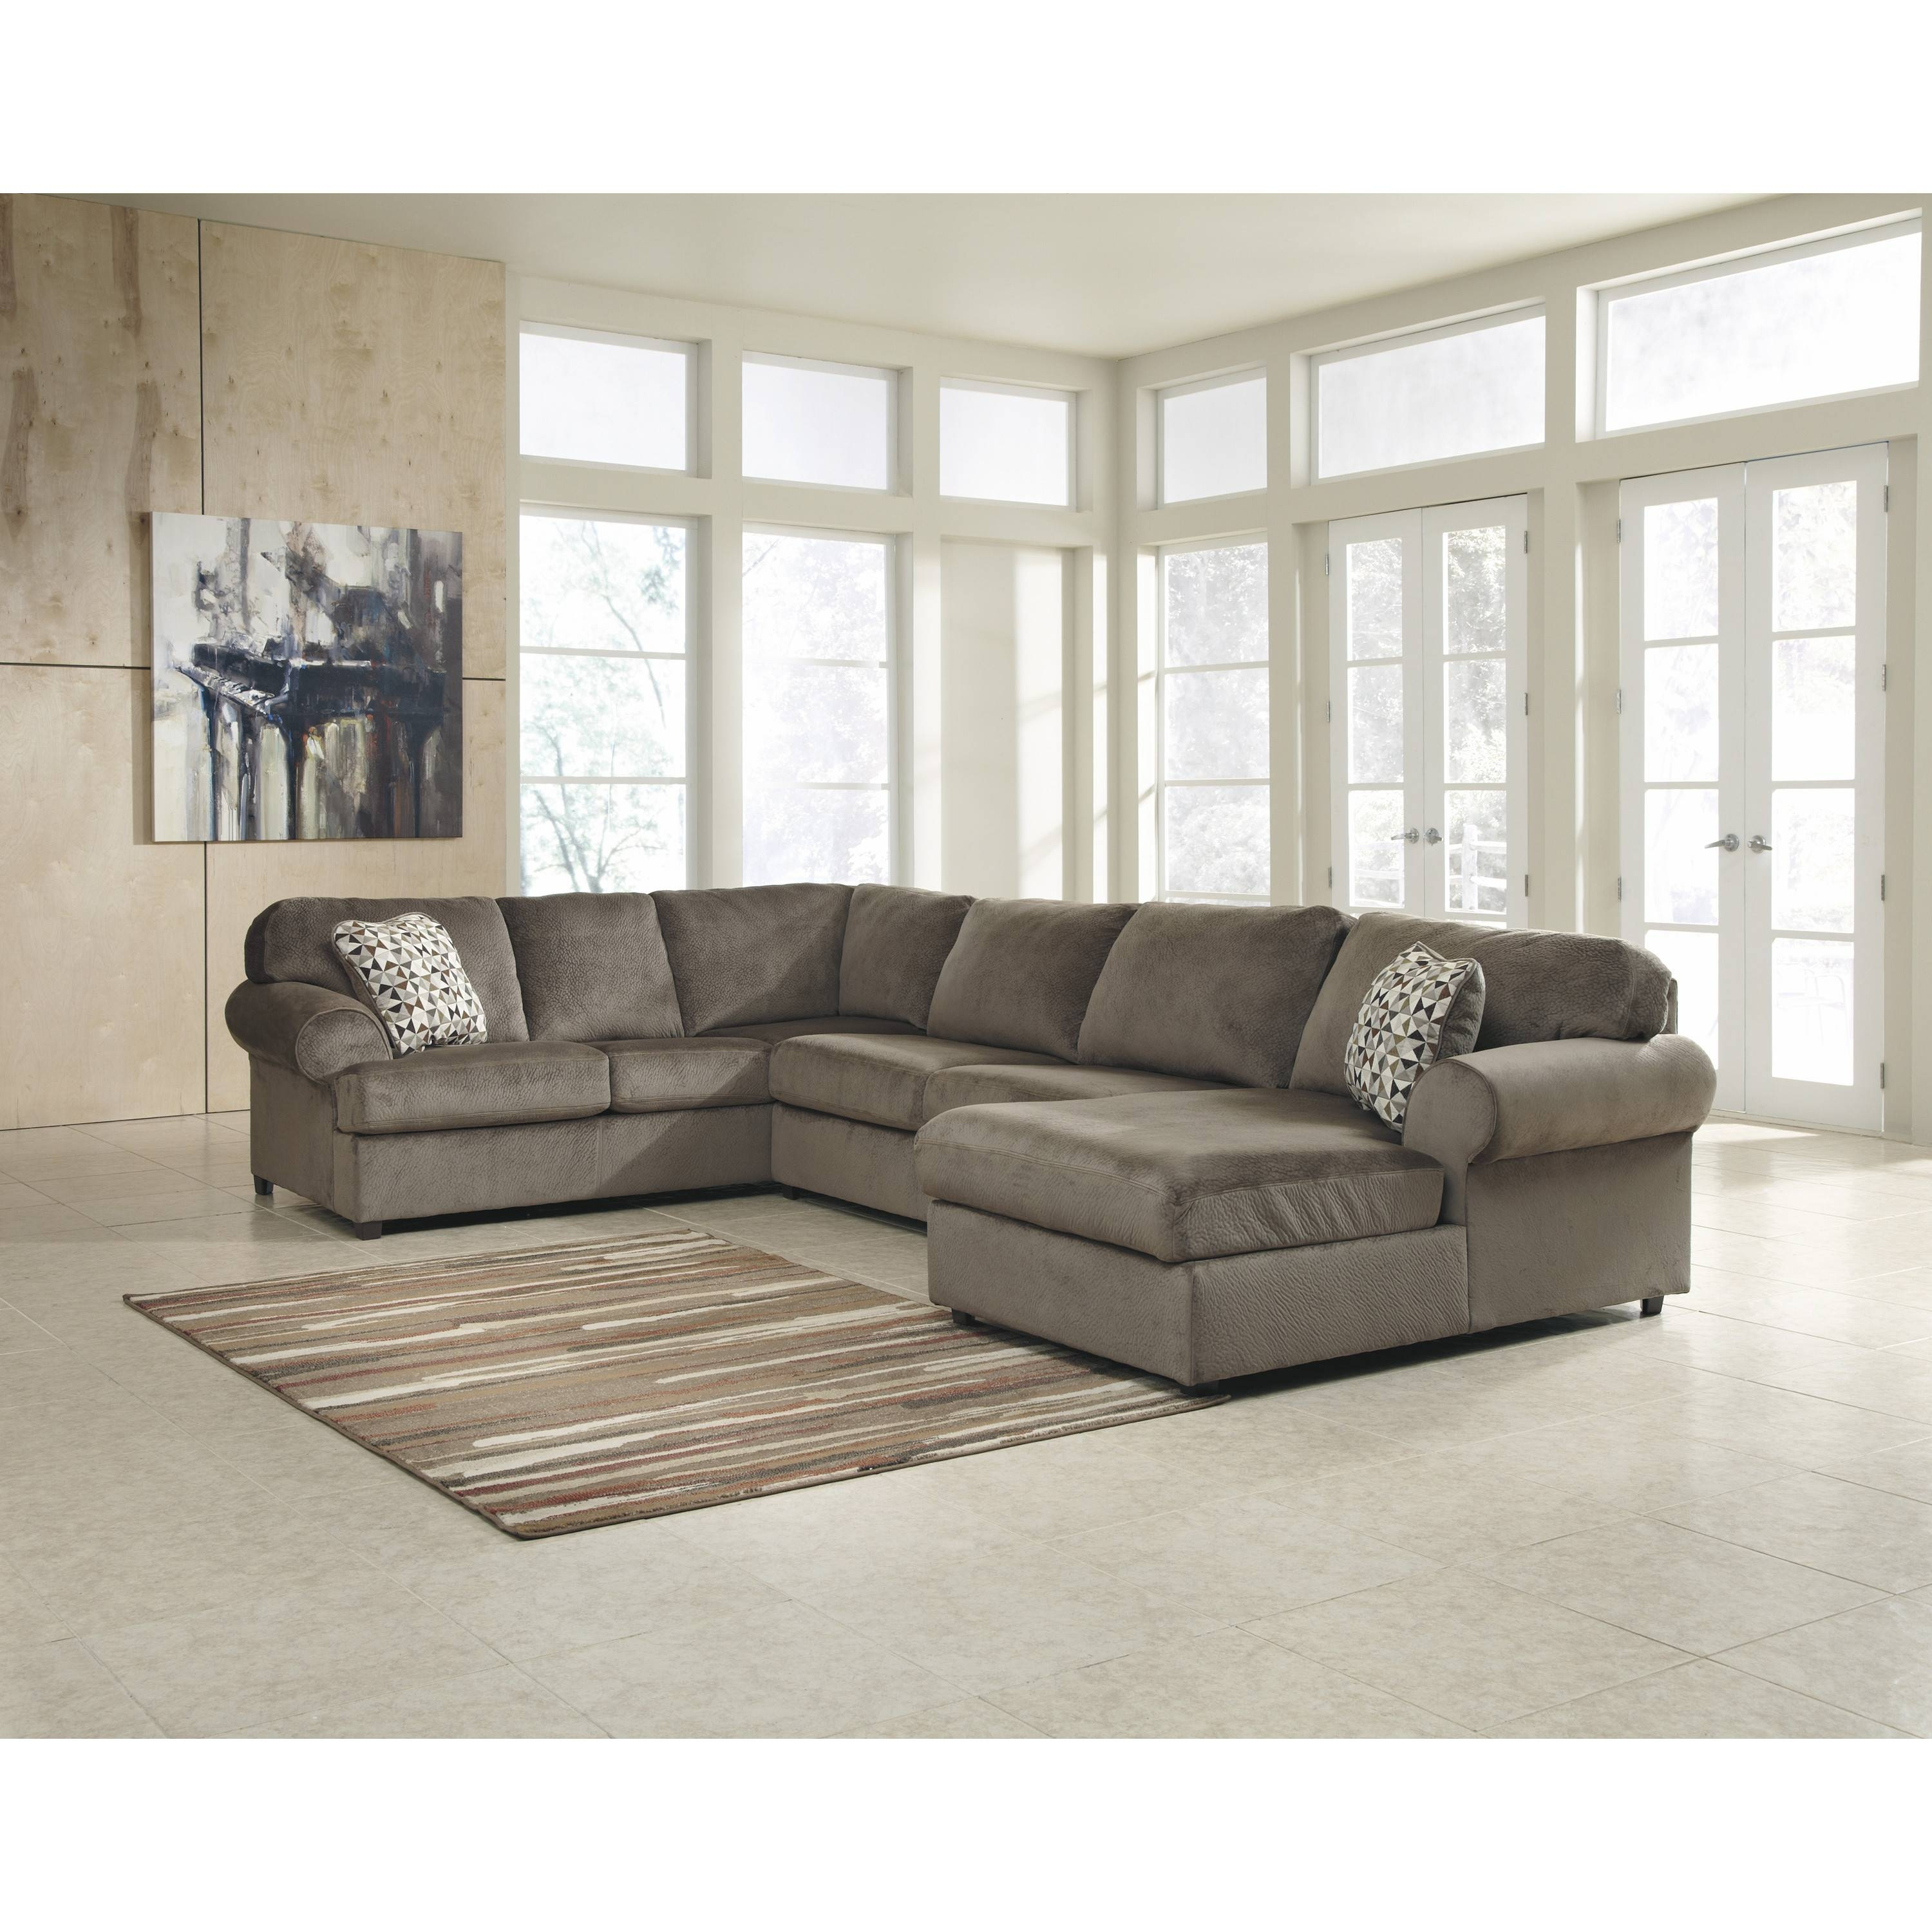 Long Sectional Sofa With Chaise | Tehranmix Decoration throughout Down Filled Sectional Sofa (Image 9 of 25)